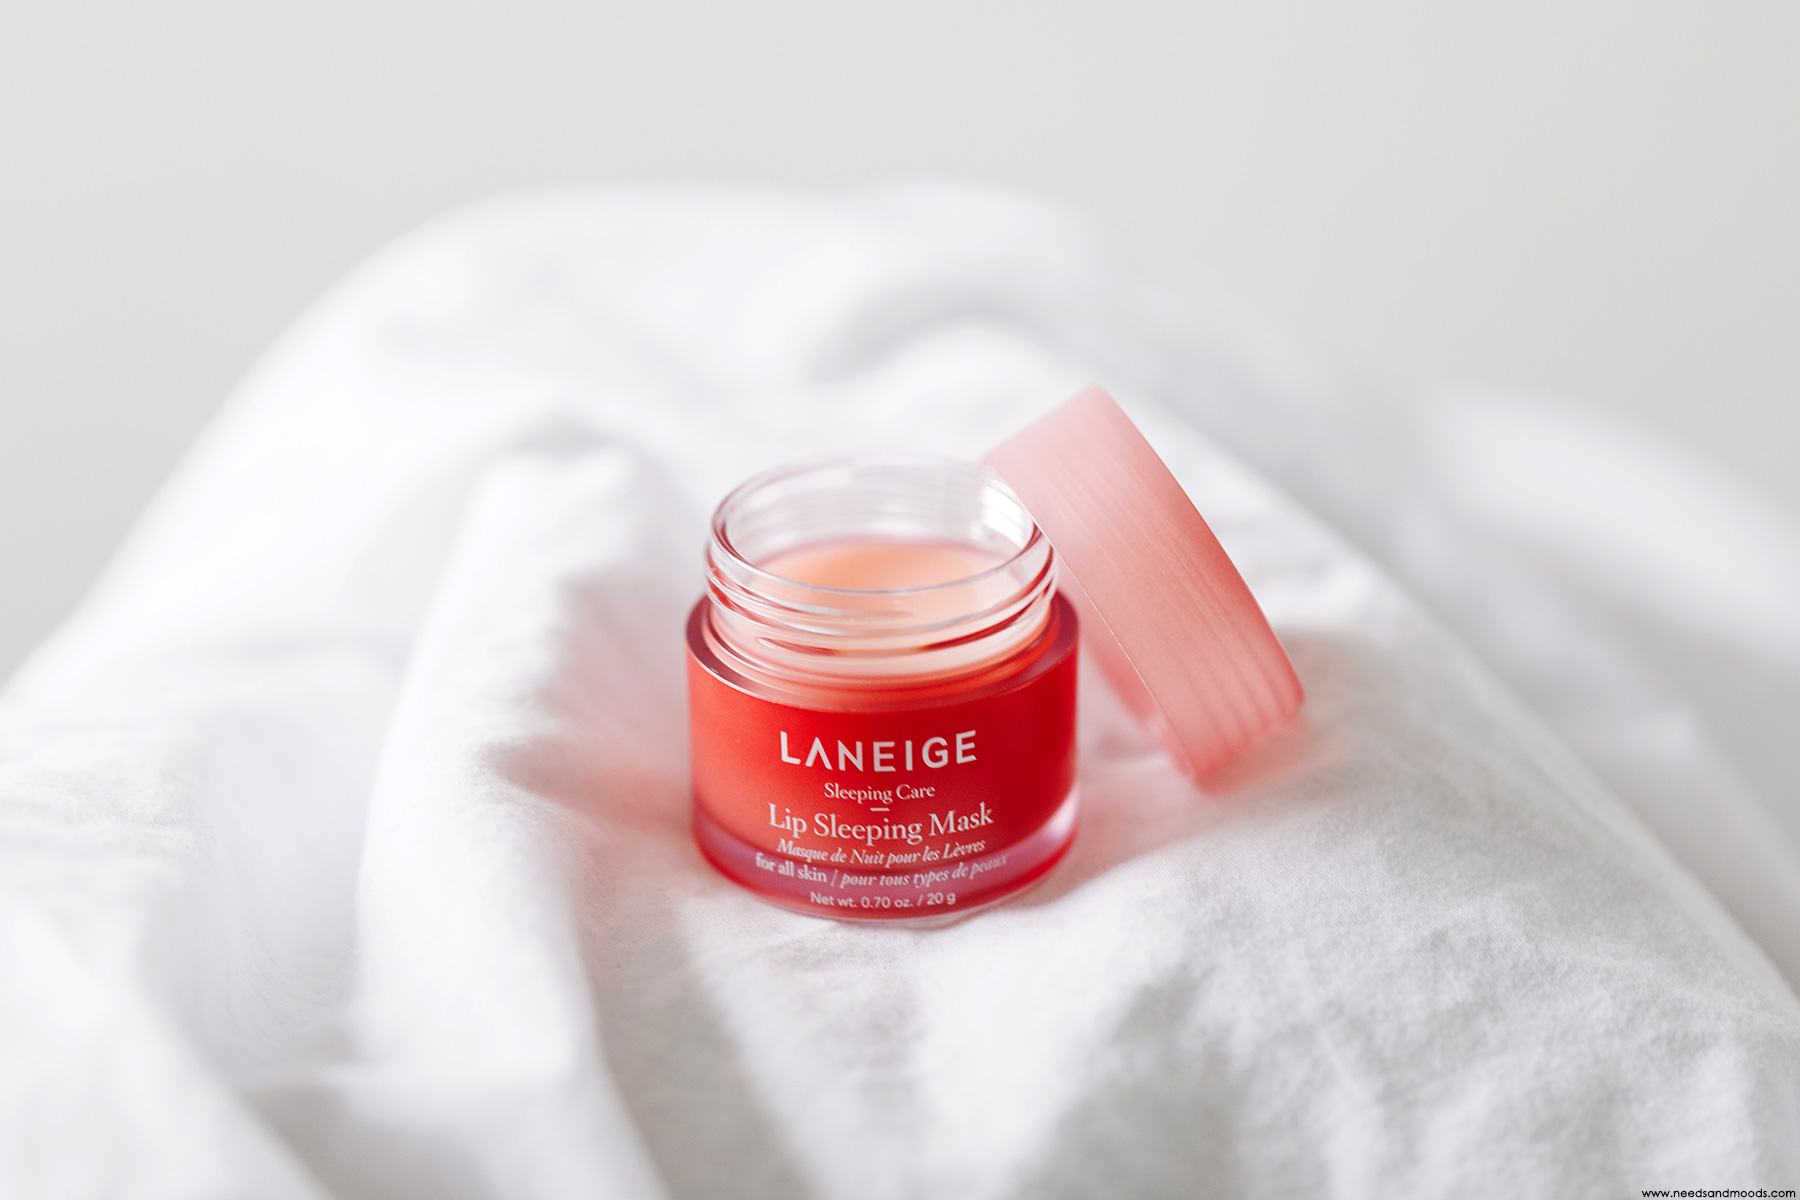 laneige lip sleeping masque